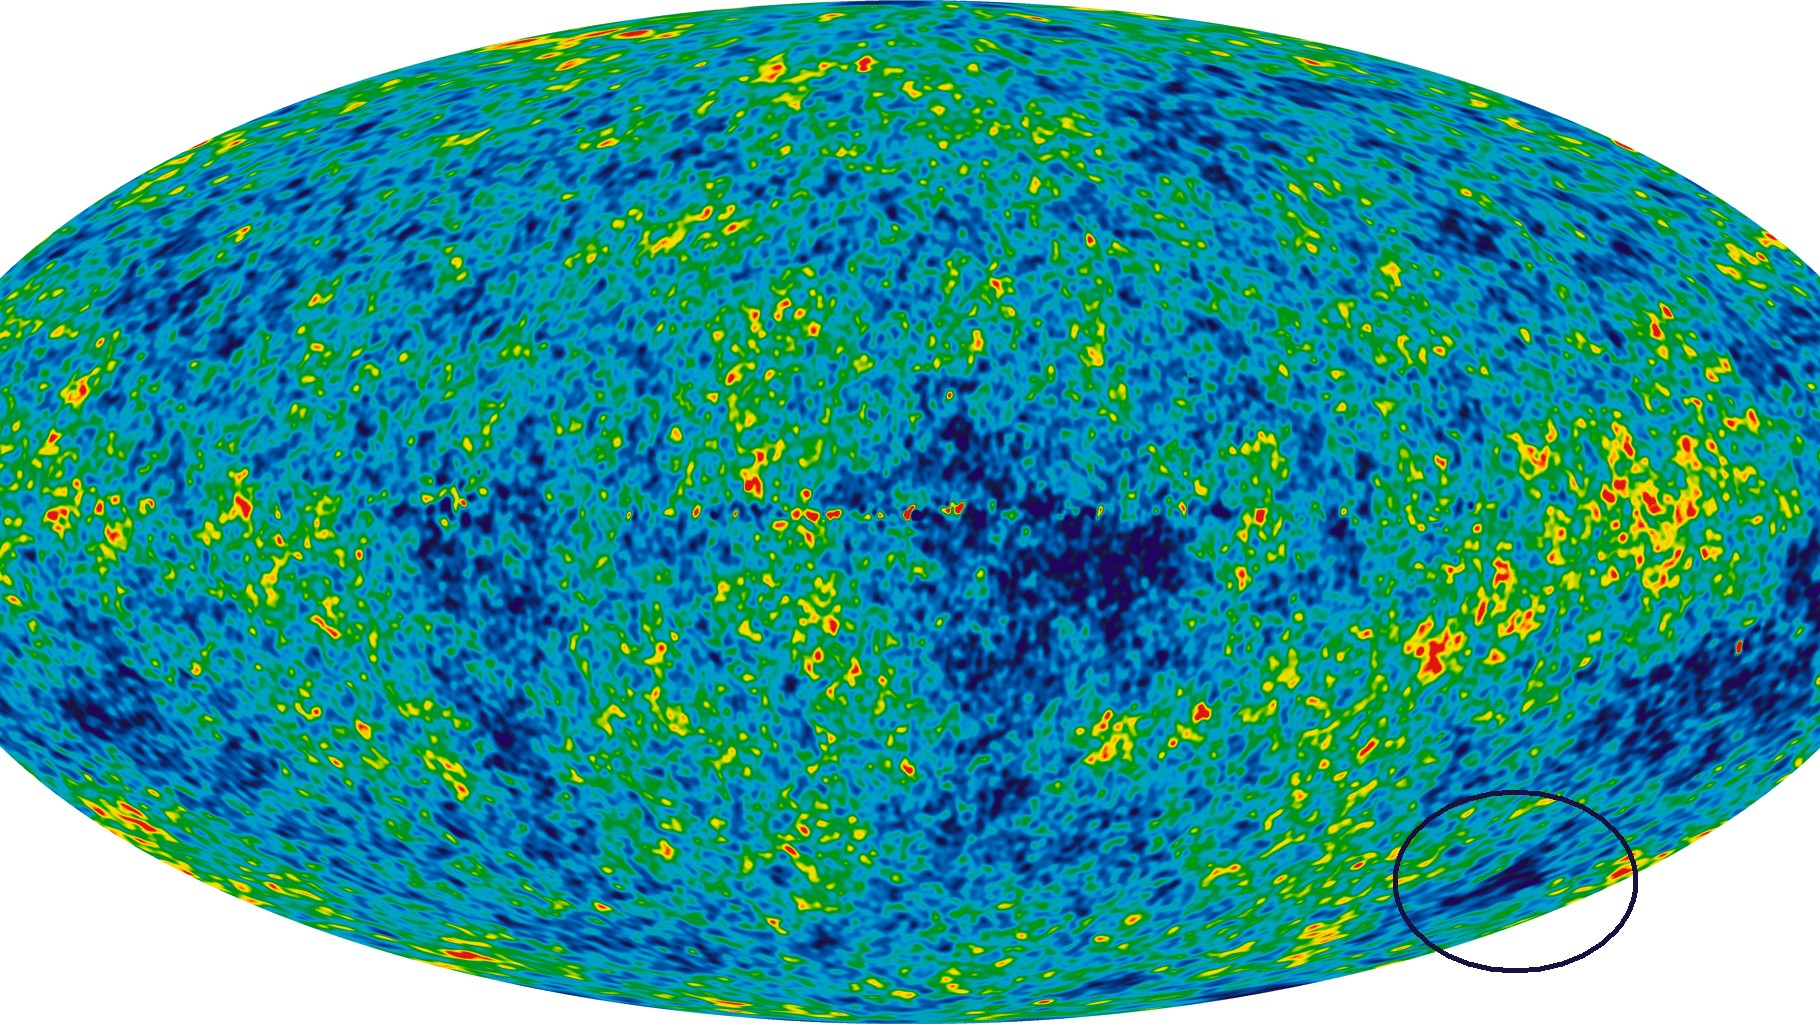 Astronomers Unravel the Mystery of the Universe's Giant Cold Spot